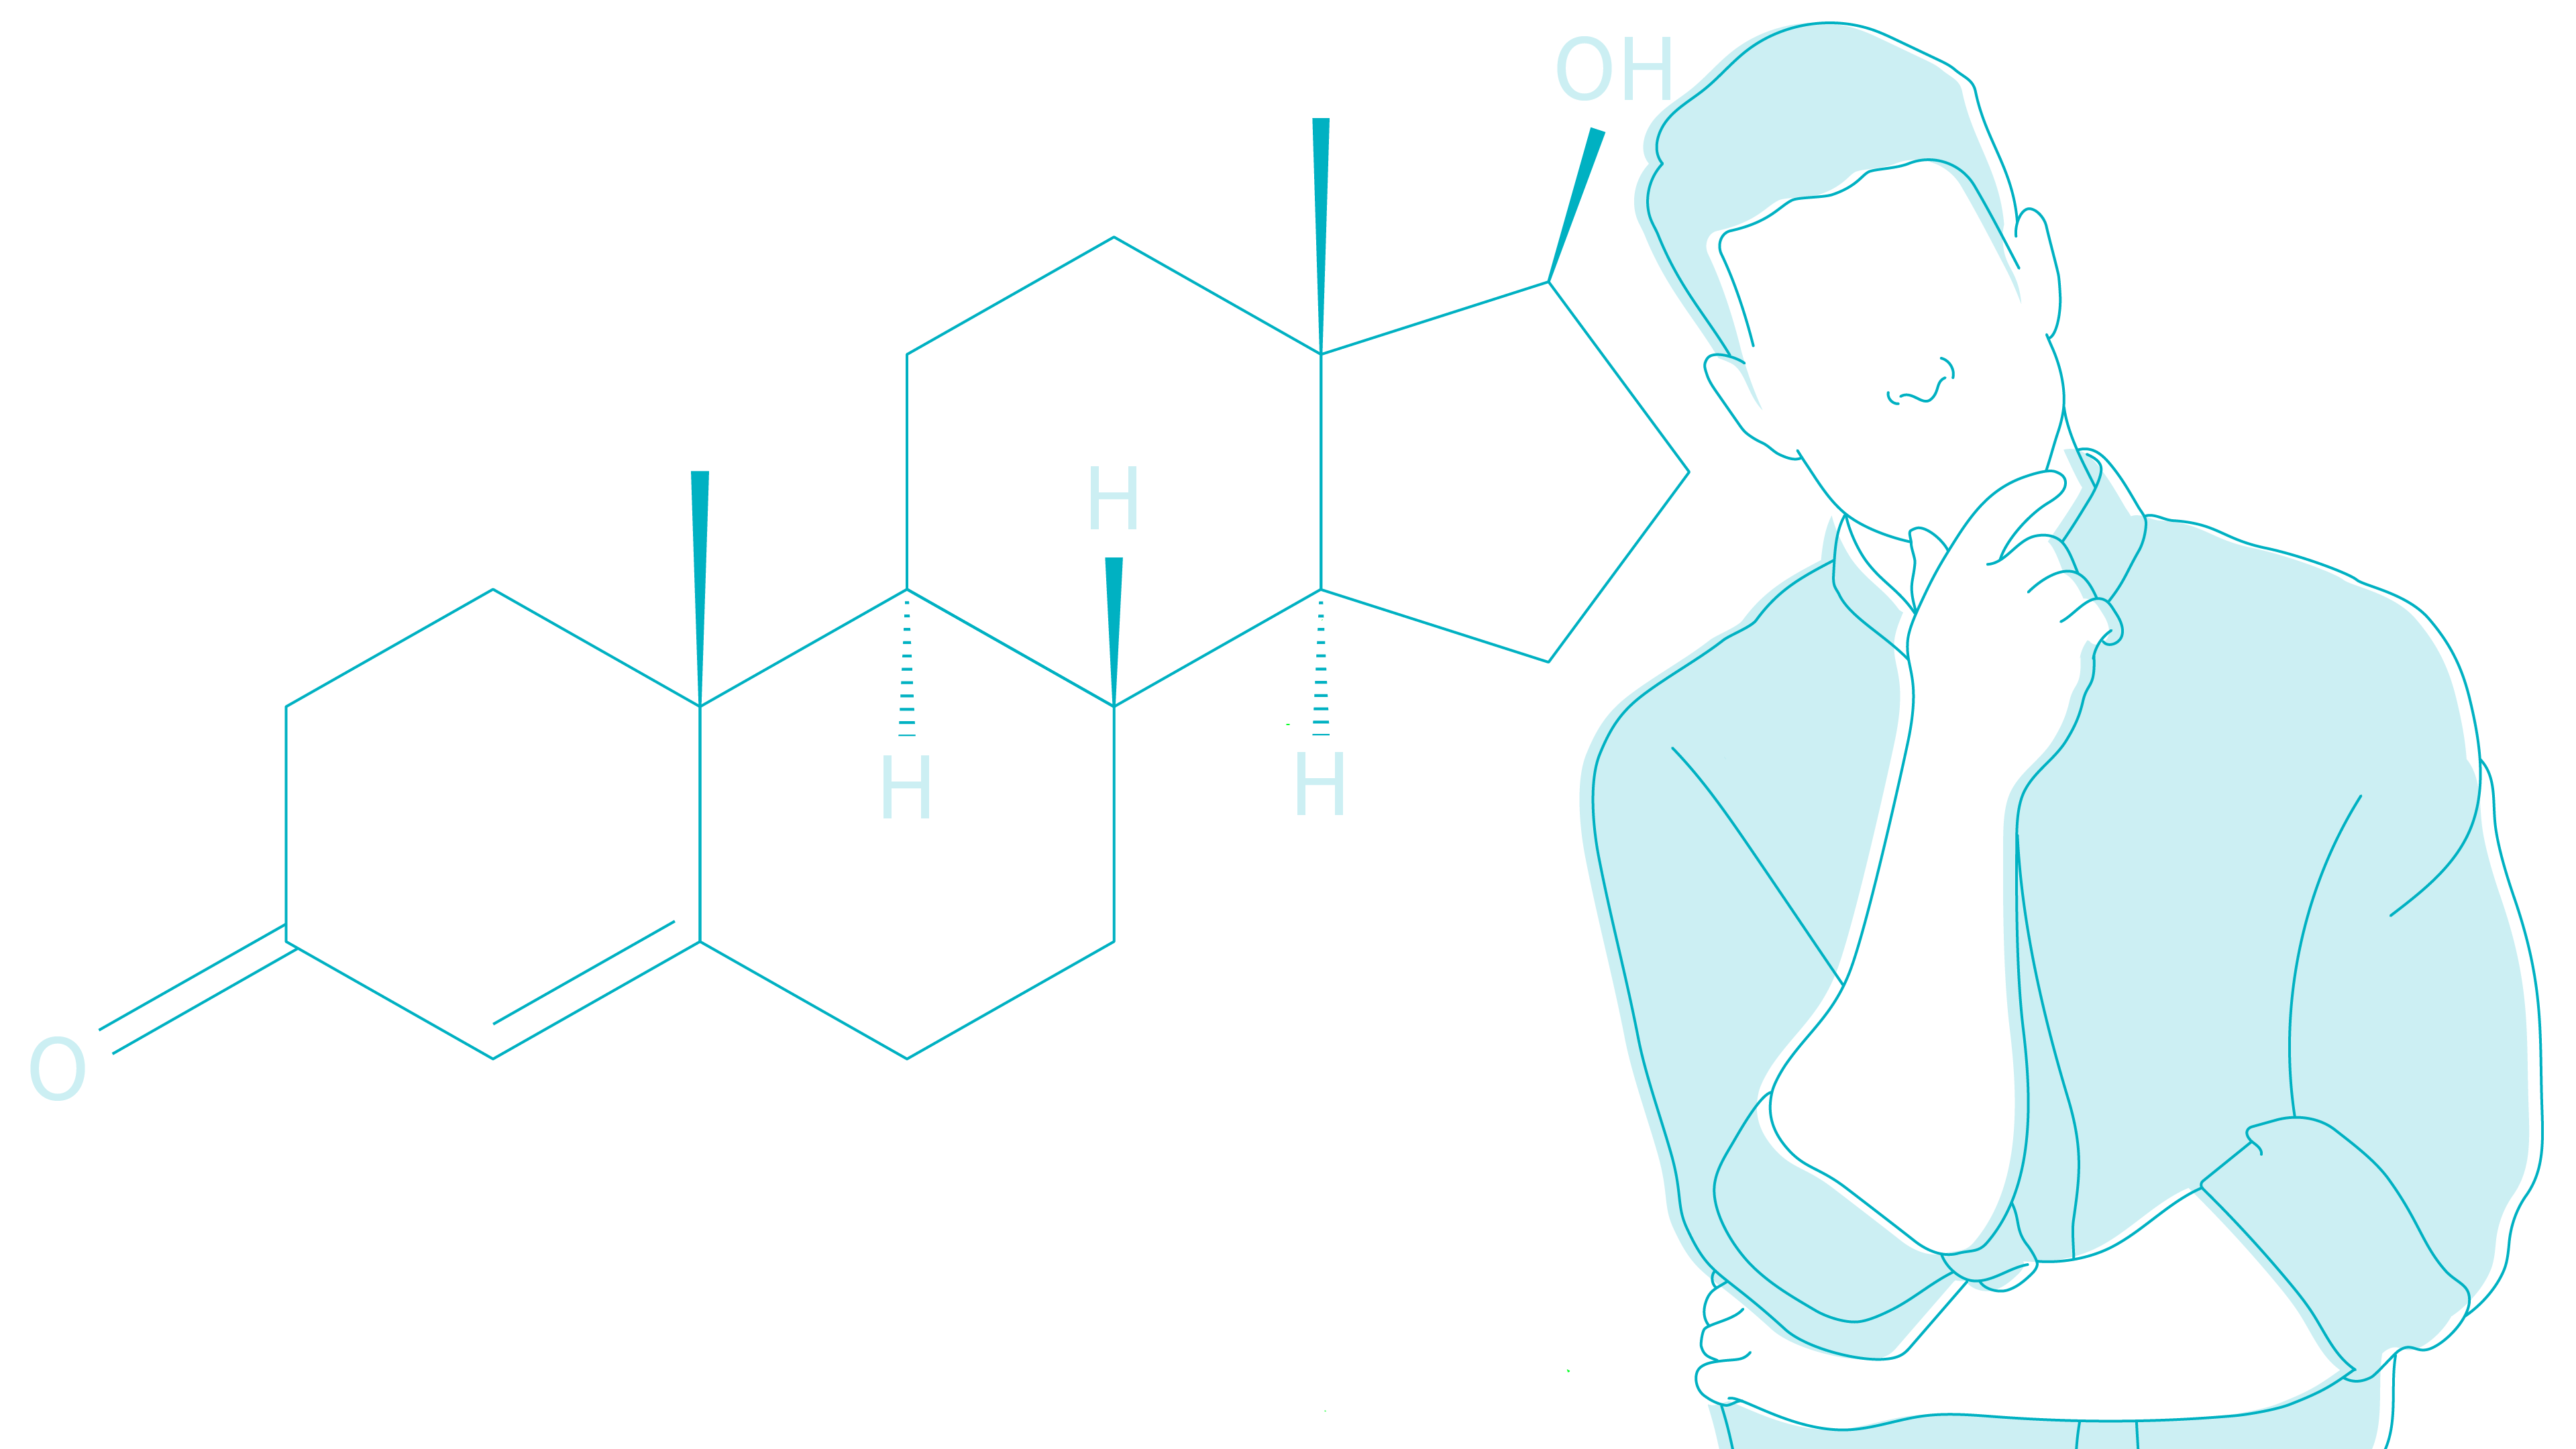 man-confused-by-testosterone-molecule-letsgetchecked-illustration